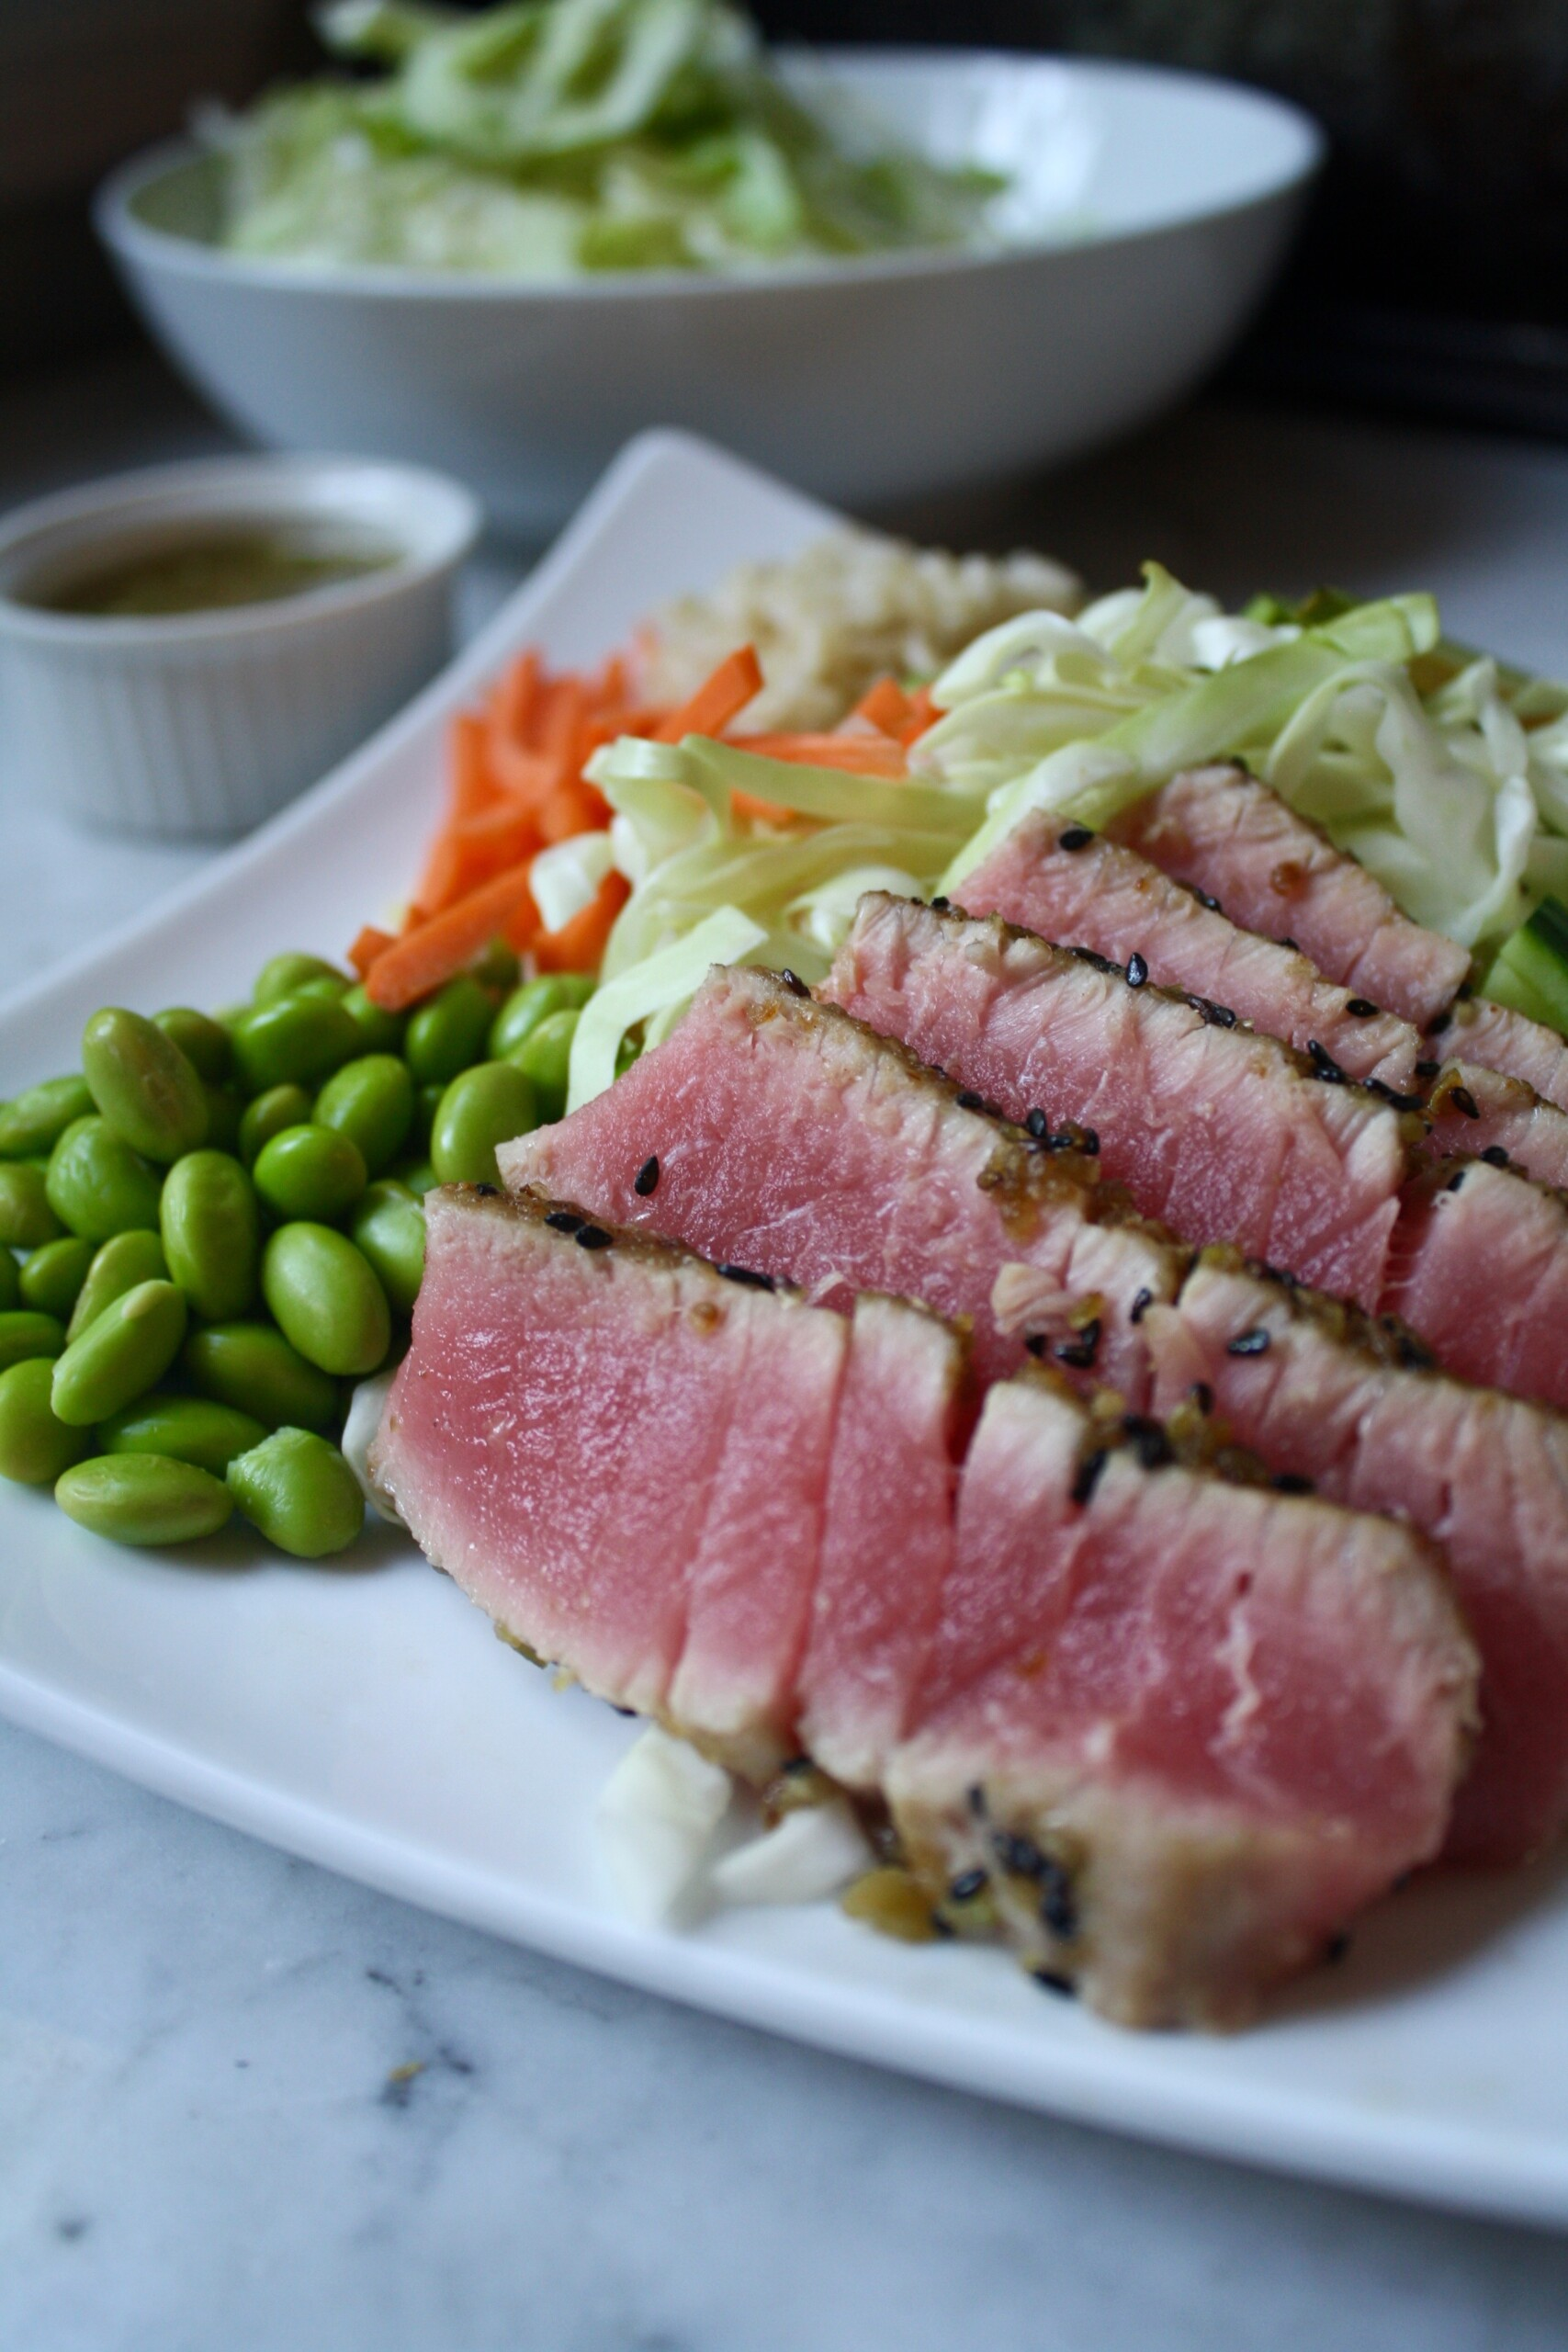 Photograph of Wasabi Crusted Ahi Tuna on a plate with edamame, cabbage, and carrots.